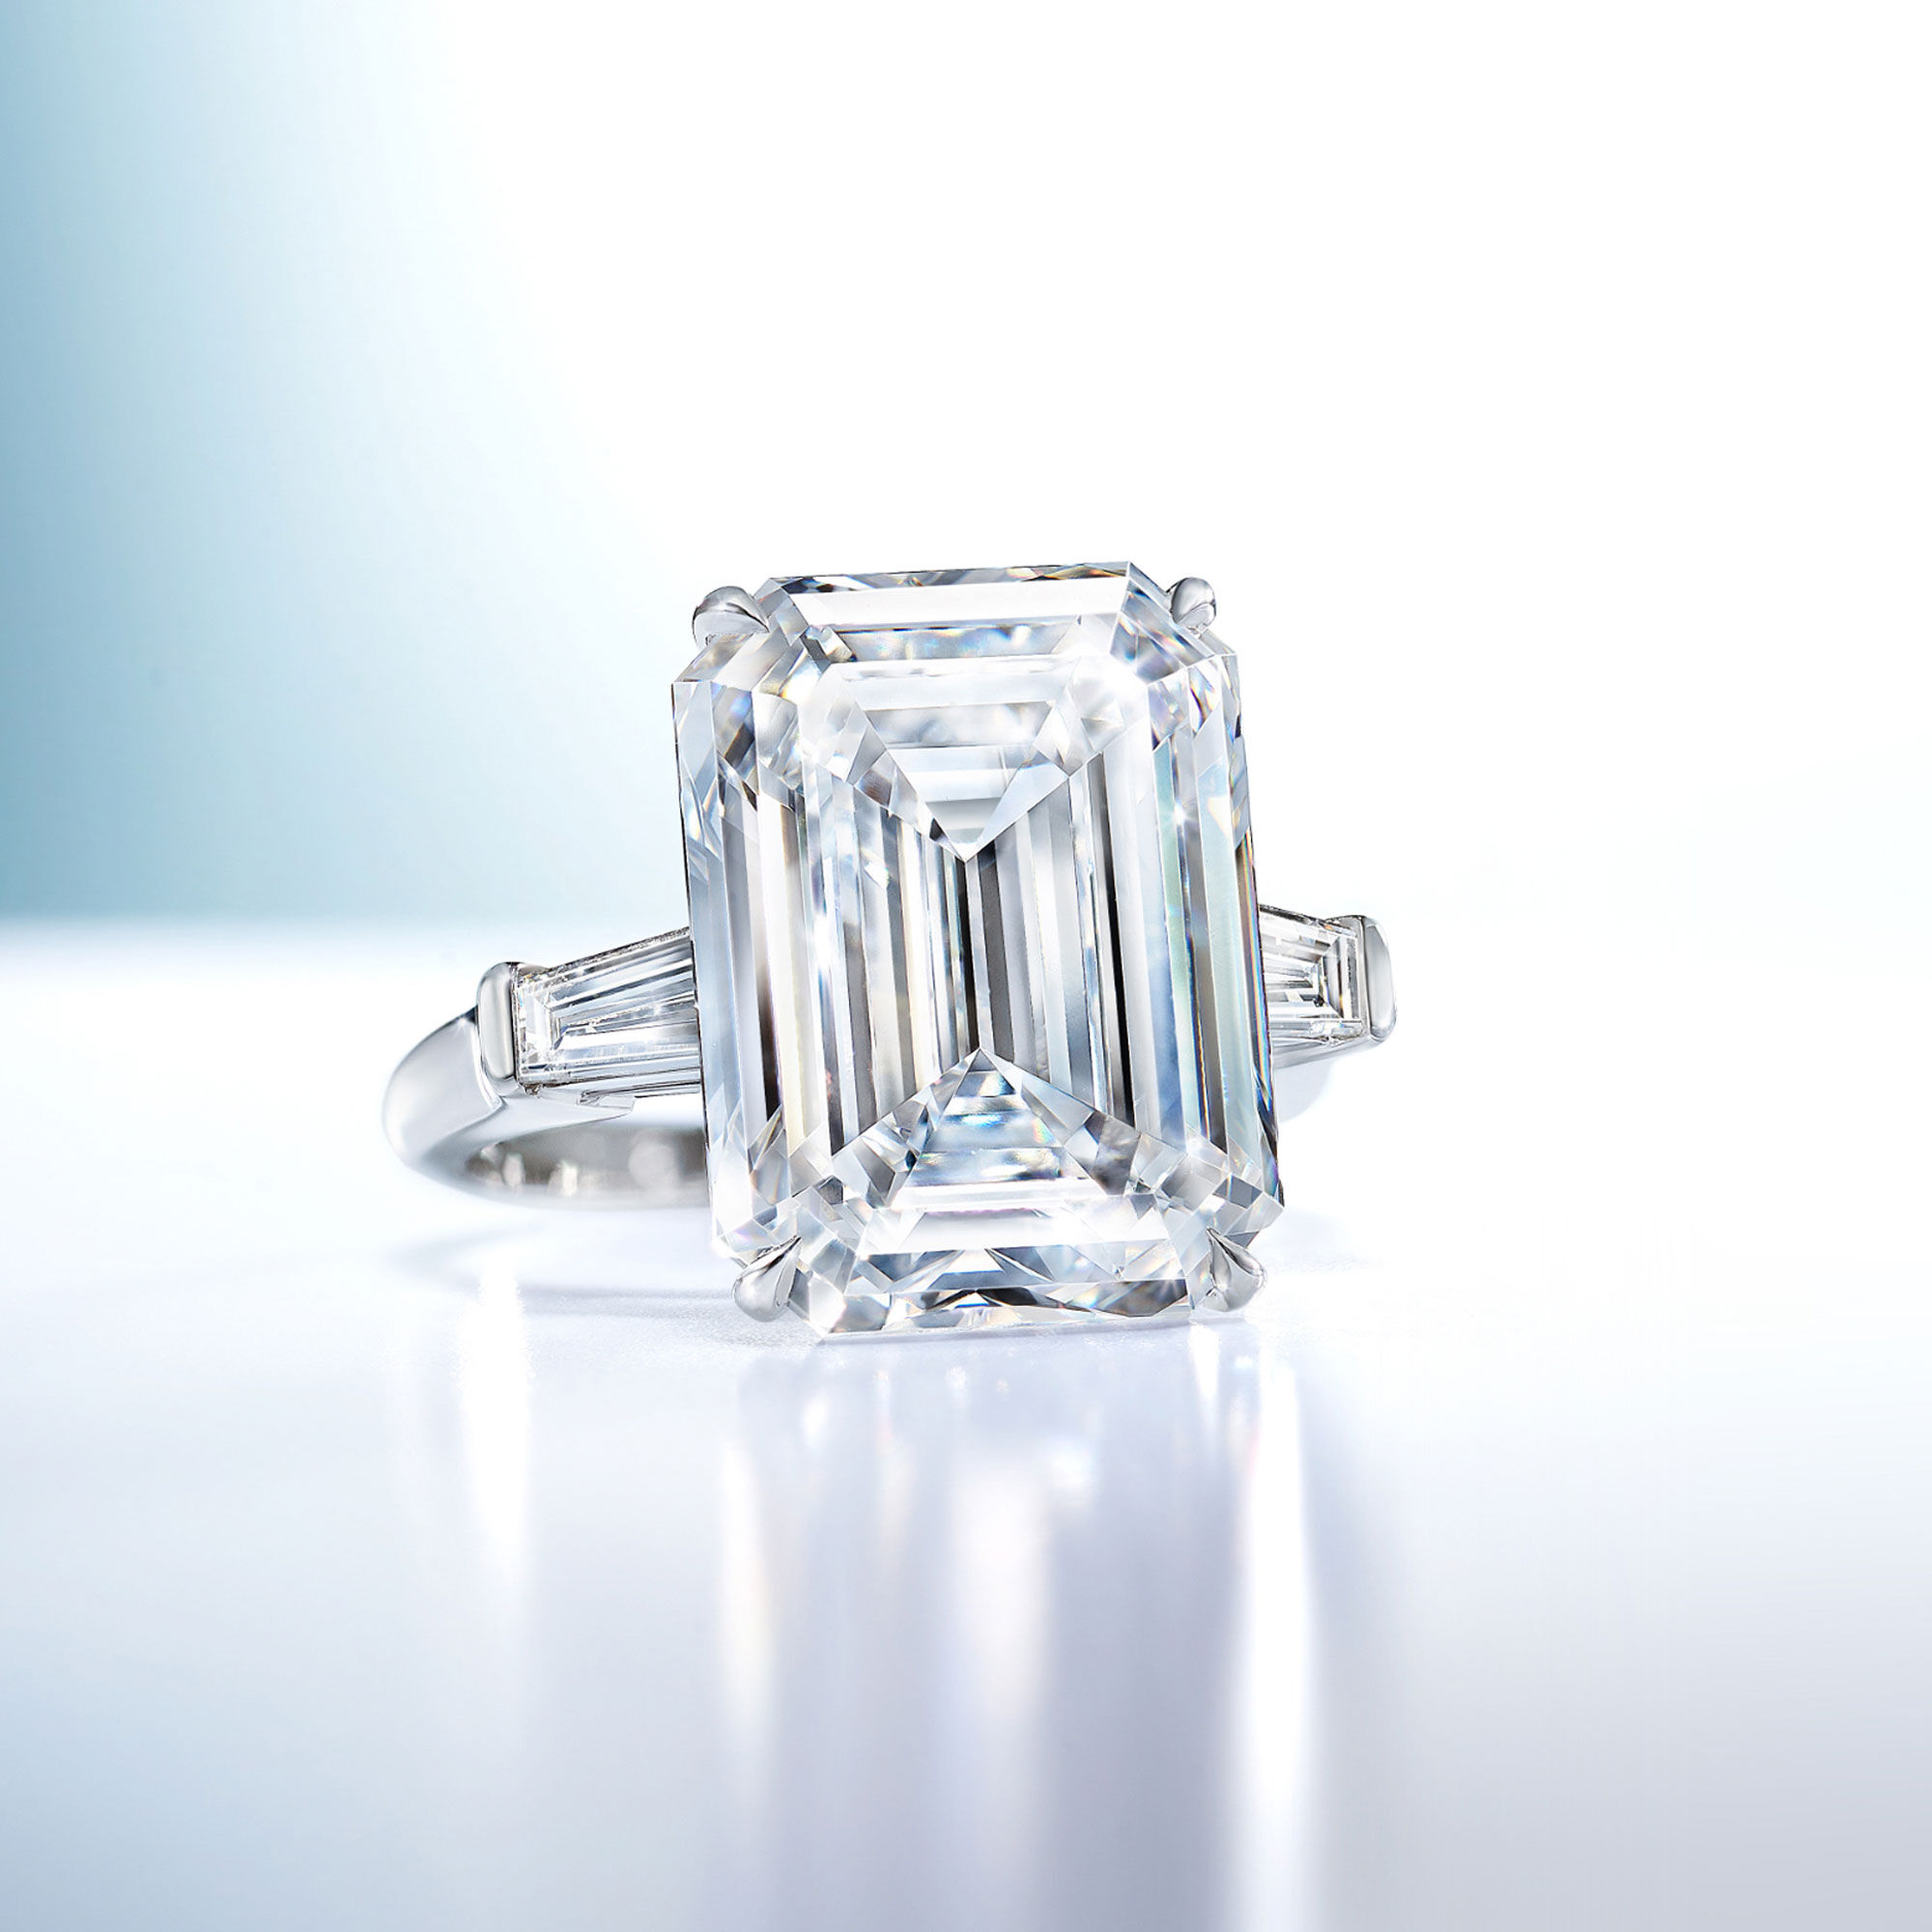 An emerald cut white diamond ring with baguette cut side stones